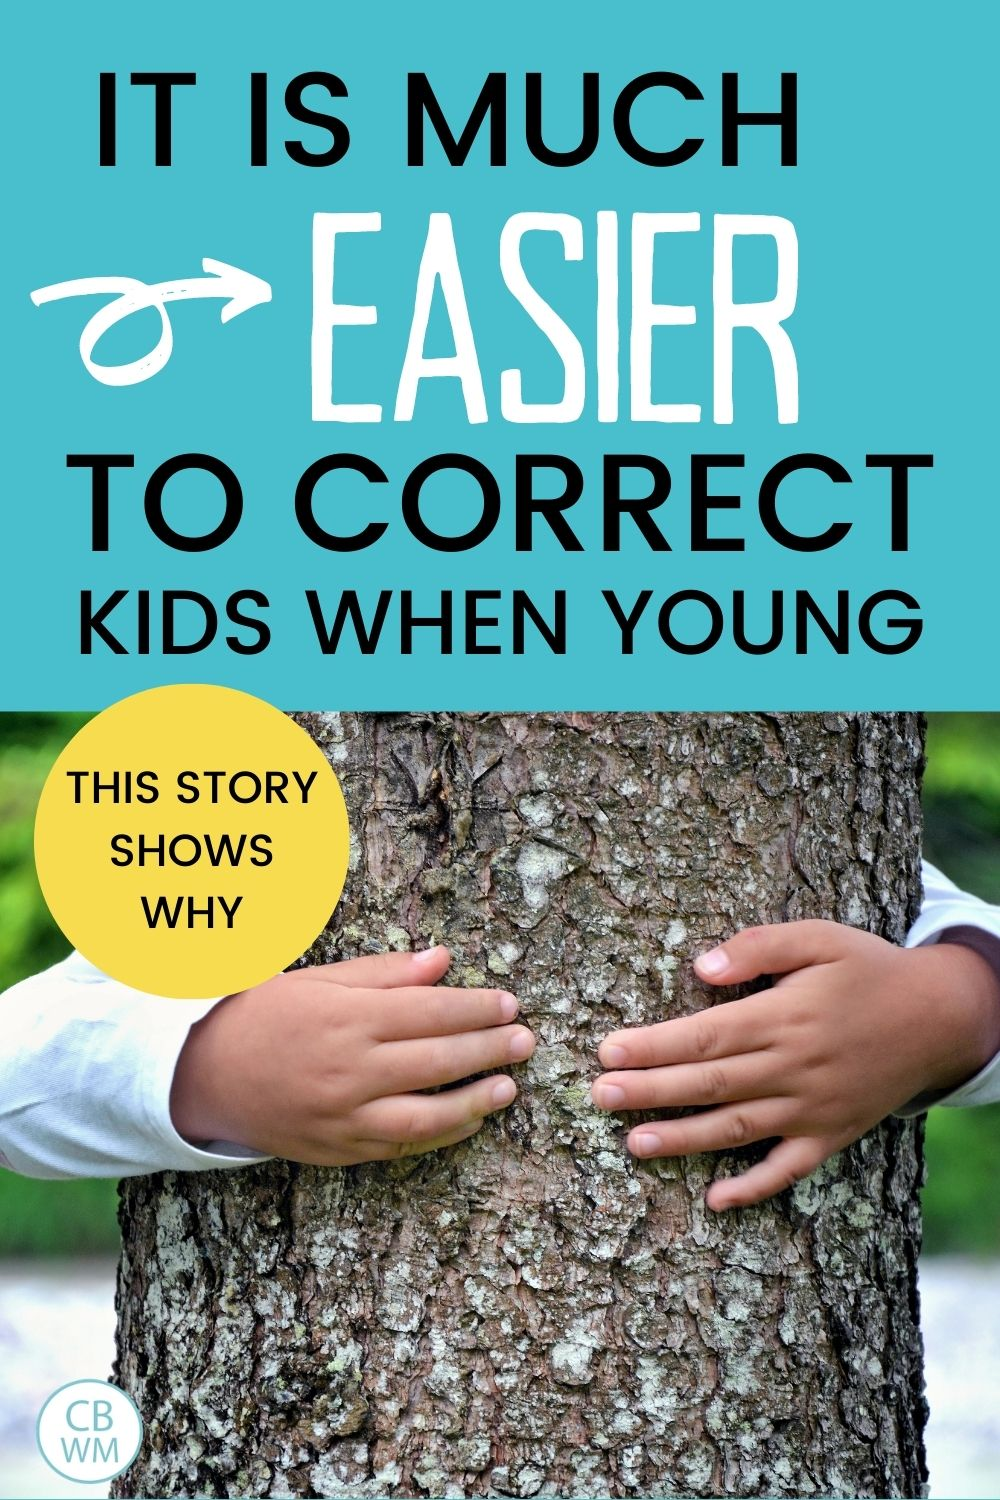 Correct when young